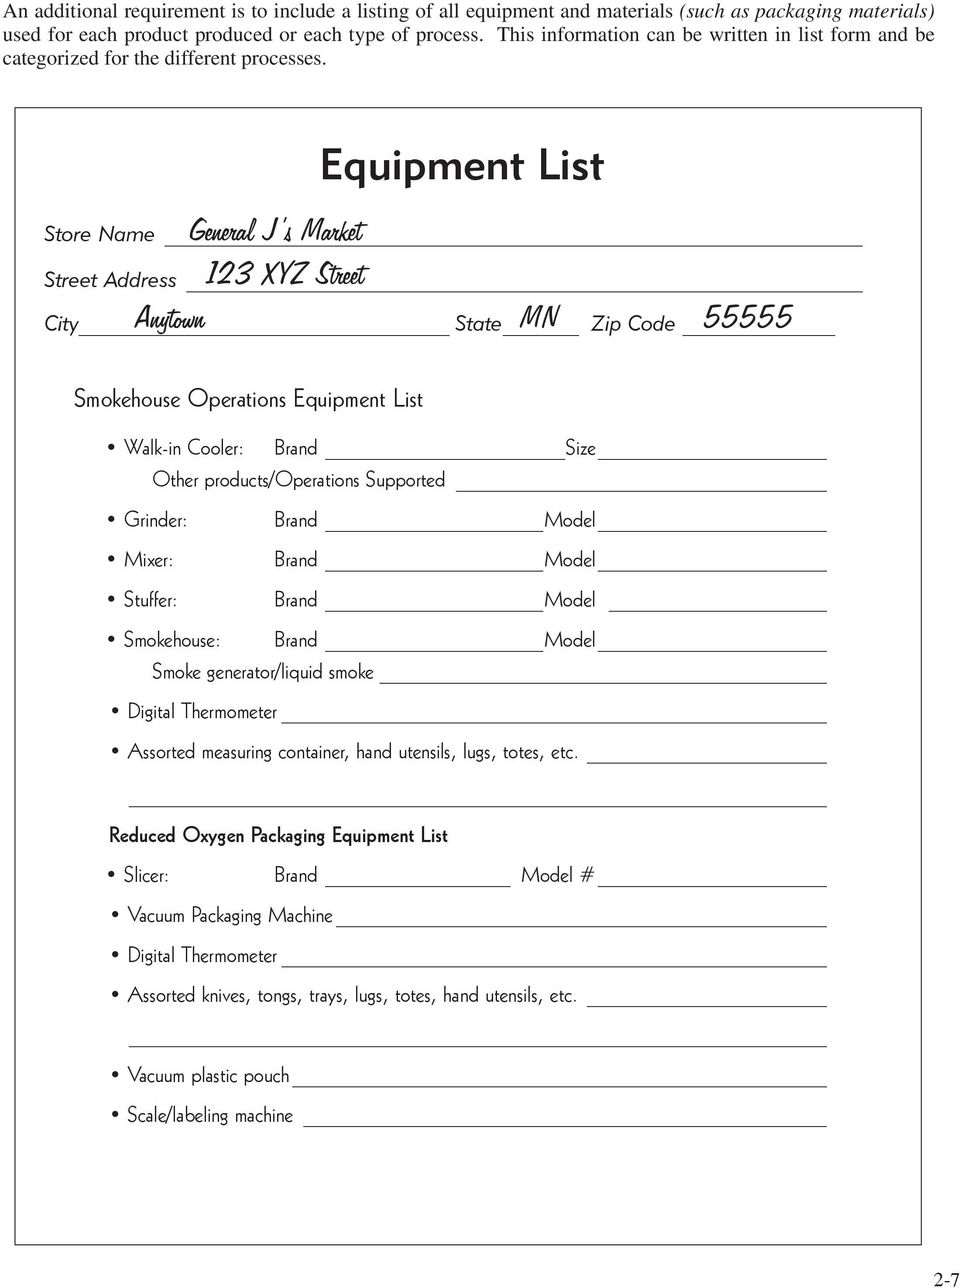 Equipment List General J s Market 123 XYZ Street Anytown MN 55555 Store Name Street Address City State Zip Code Smokehouse Operations Equipment List Walk-in Cooler: Brand Size Other